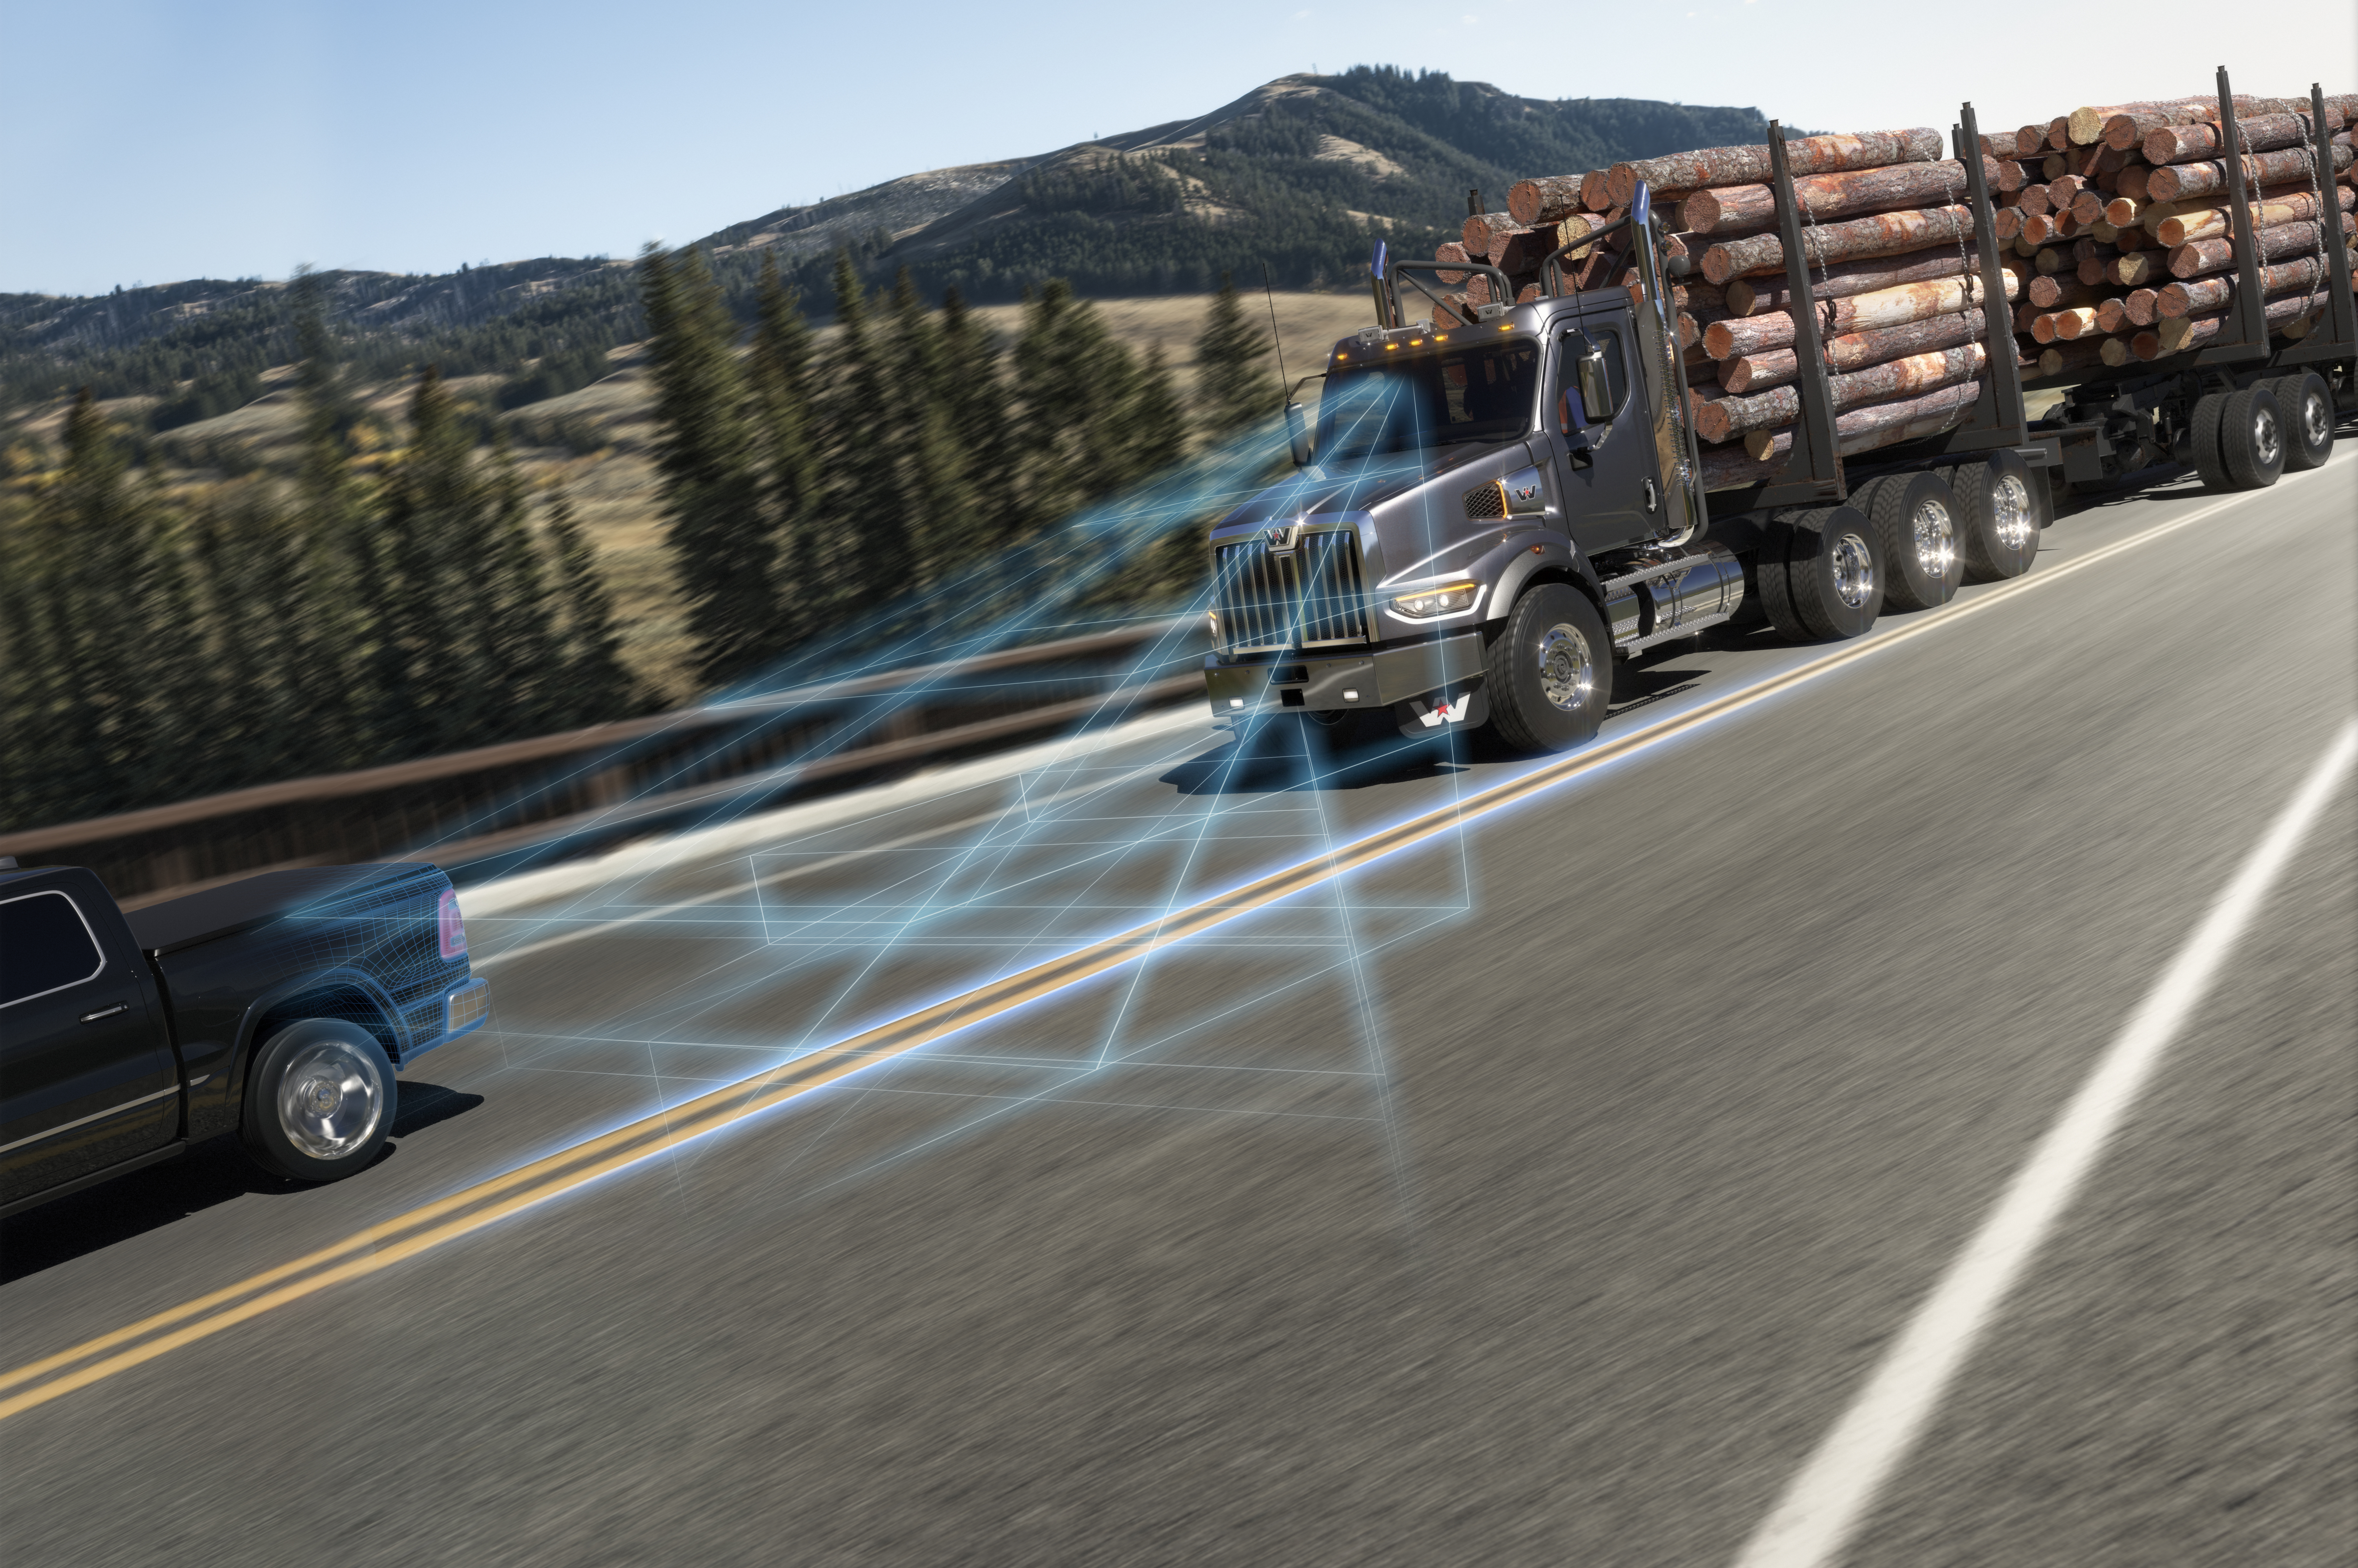 Rendering of the range of the ABA5 detection distance between the Western Star 49X and a vehicle while on a road